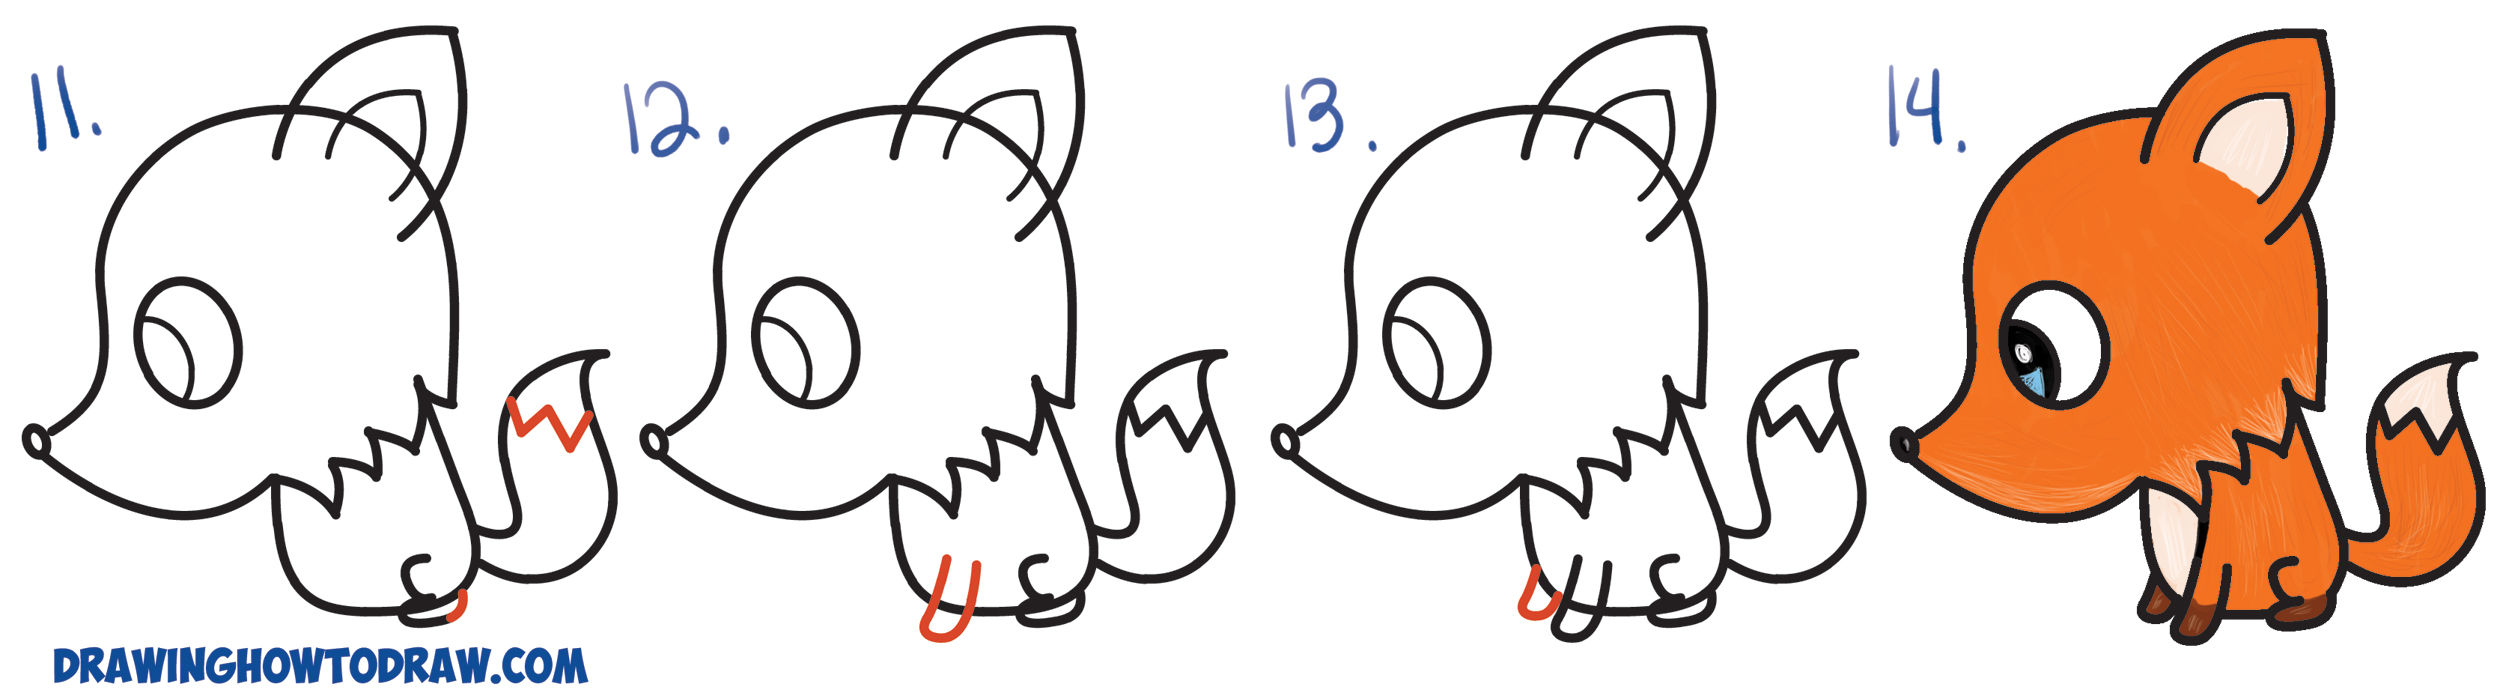 Learn How to Draw a Cute Cartoon Fox from a Question Mark (Kawaii / Chibi) Simple Steps Drawing Lesson for Beginners and Children